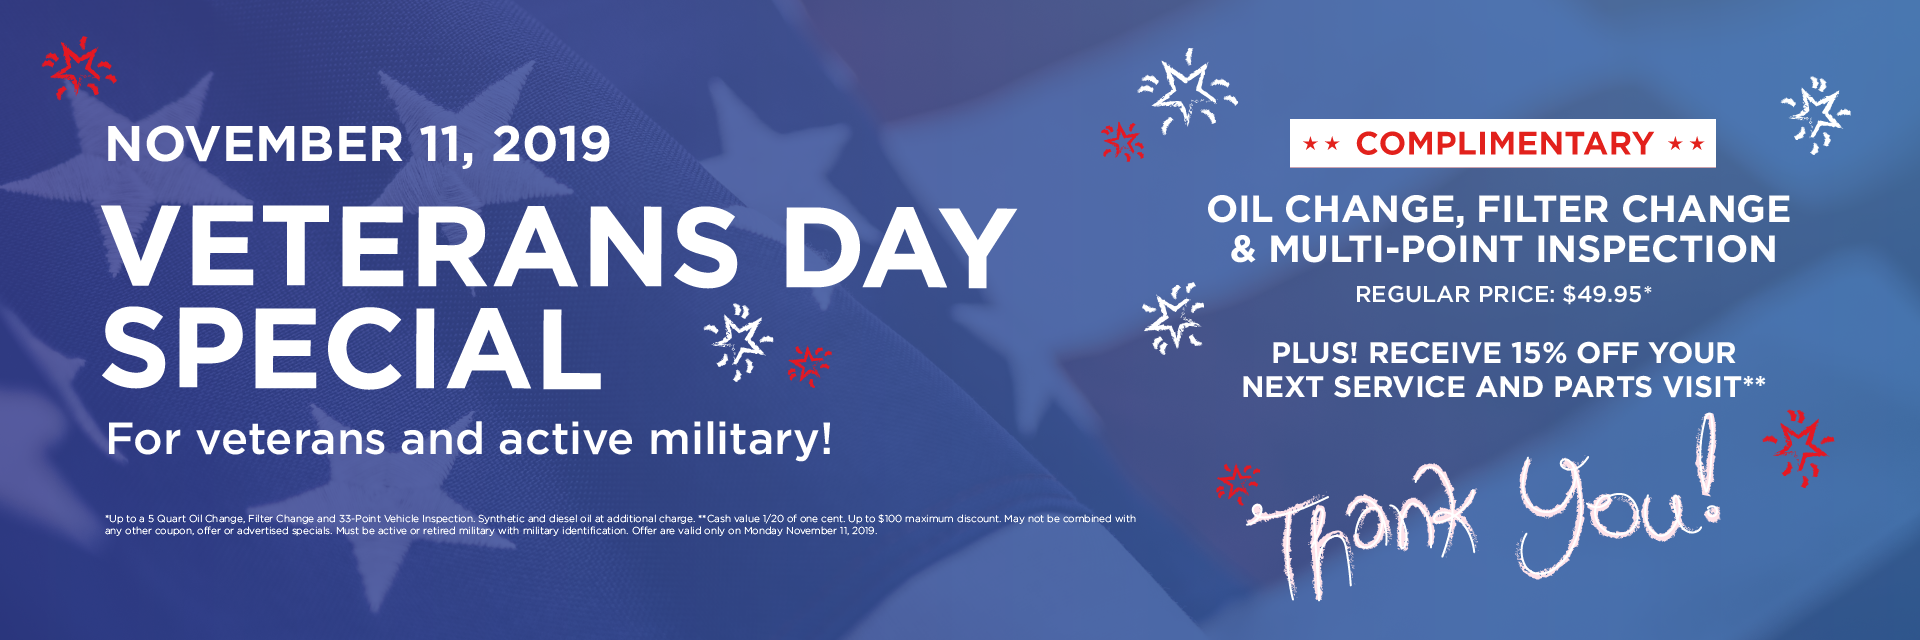 TODAY ONLY Veterans Day Special  November 11, 2019 - For active and retired military  Complimentary Oil Change Oil Change, Filter Change & Multi-Point Inspection Regular Price: $49.95*   Plus! Receive 15% Off Your Next Service and Parts Visit**   Thank You For Your Service!   *Up to a 5 Quart Oil Change, Filter Change and 33-Point Vehicle Inspection. Synthetic and diesel oil at additional charge. **Cash value 1/20 of one cent. Up to $100 maximum discount. May not be combined with any other coupon, offer or advertised specials. Must be active or retired military with military identification. Offer are valid only on Monday November 11, 2019.